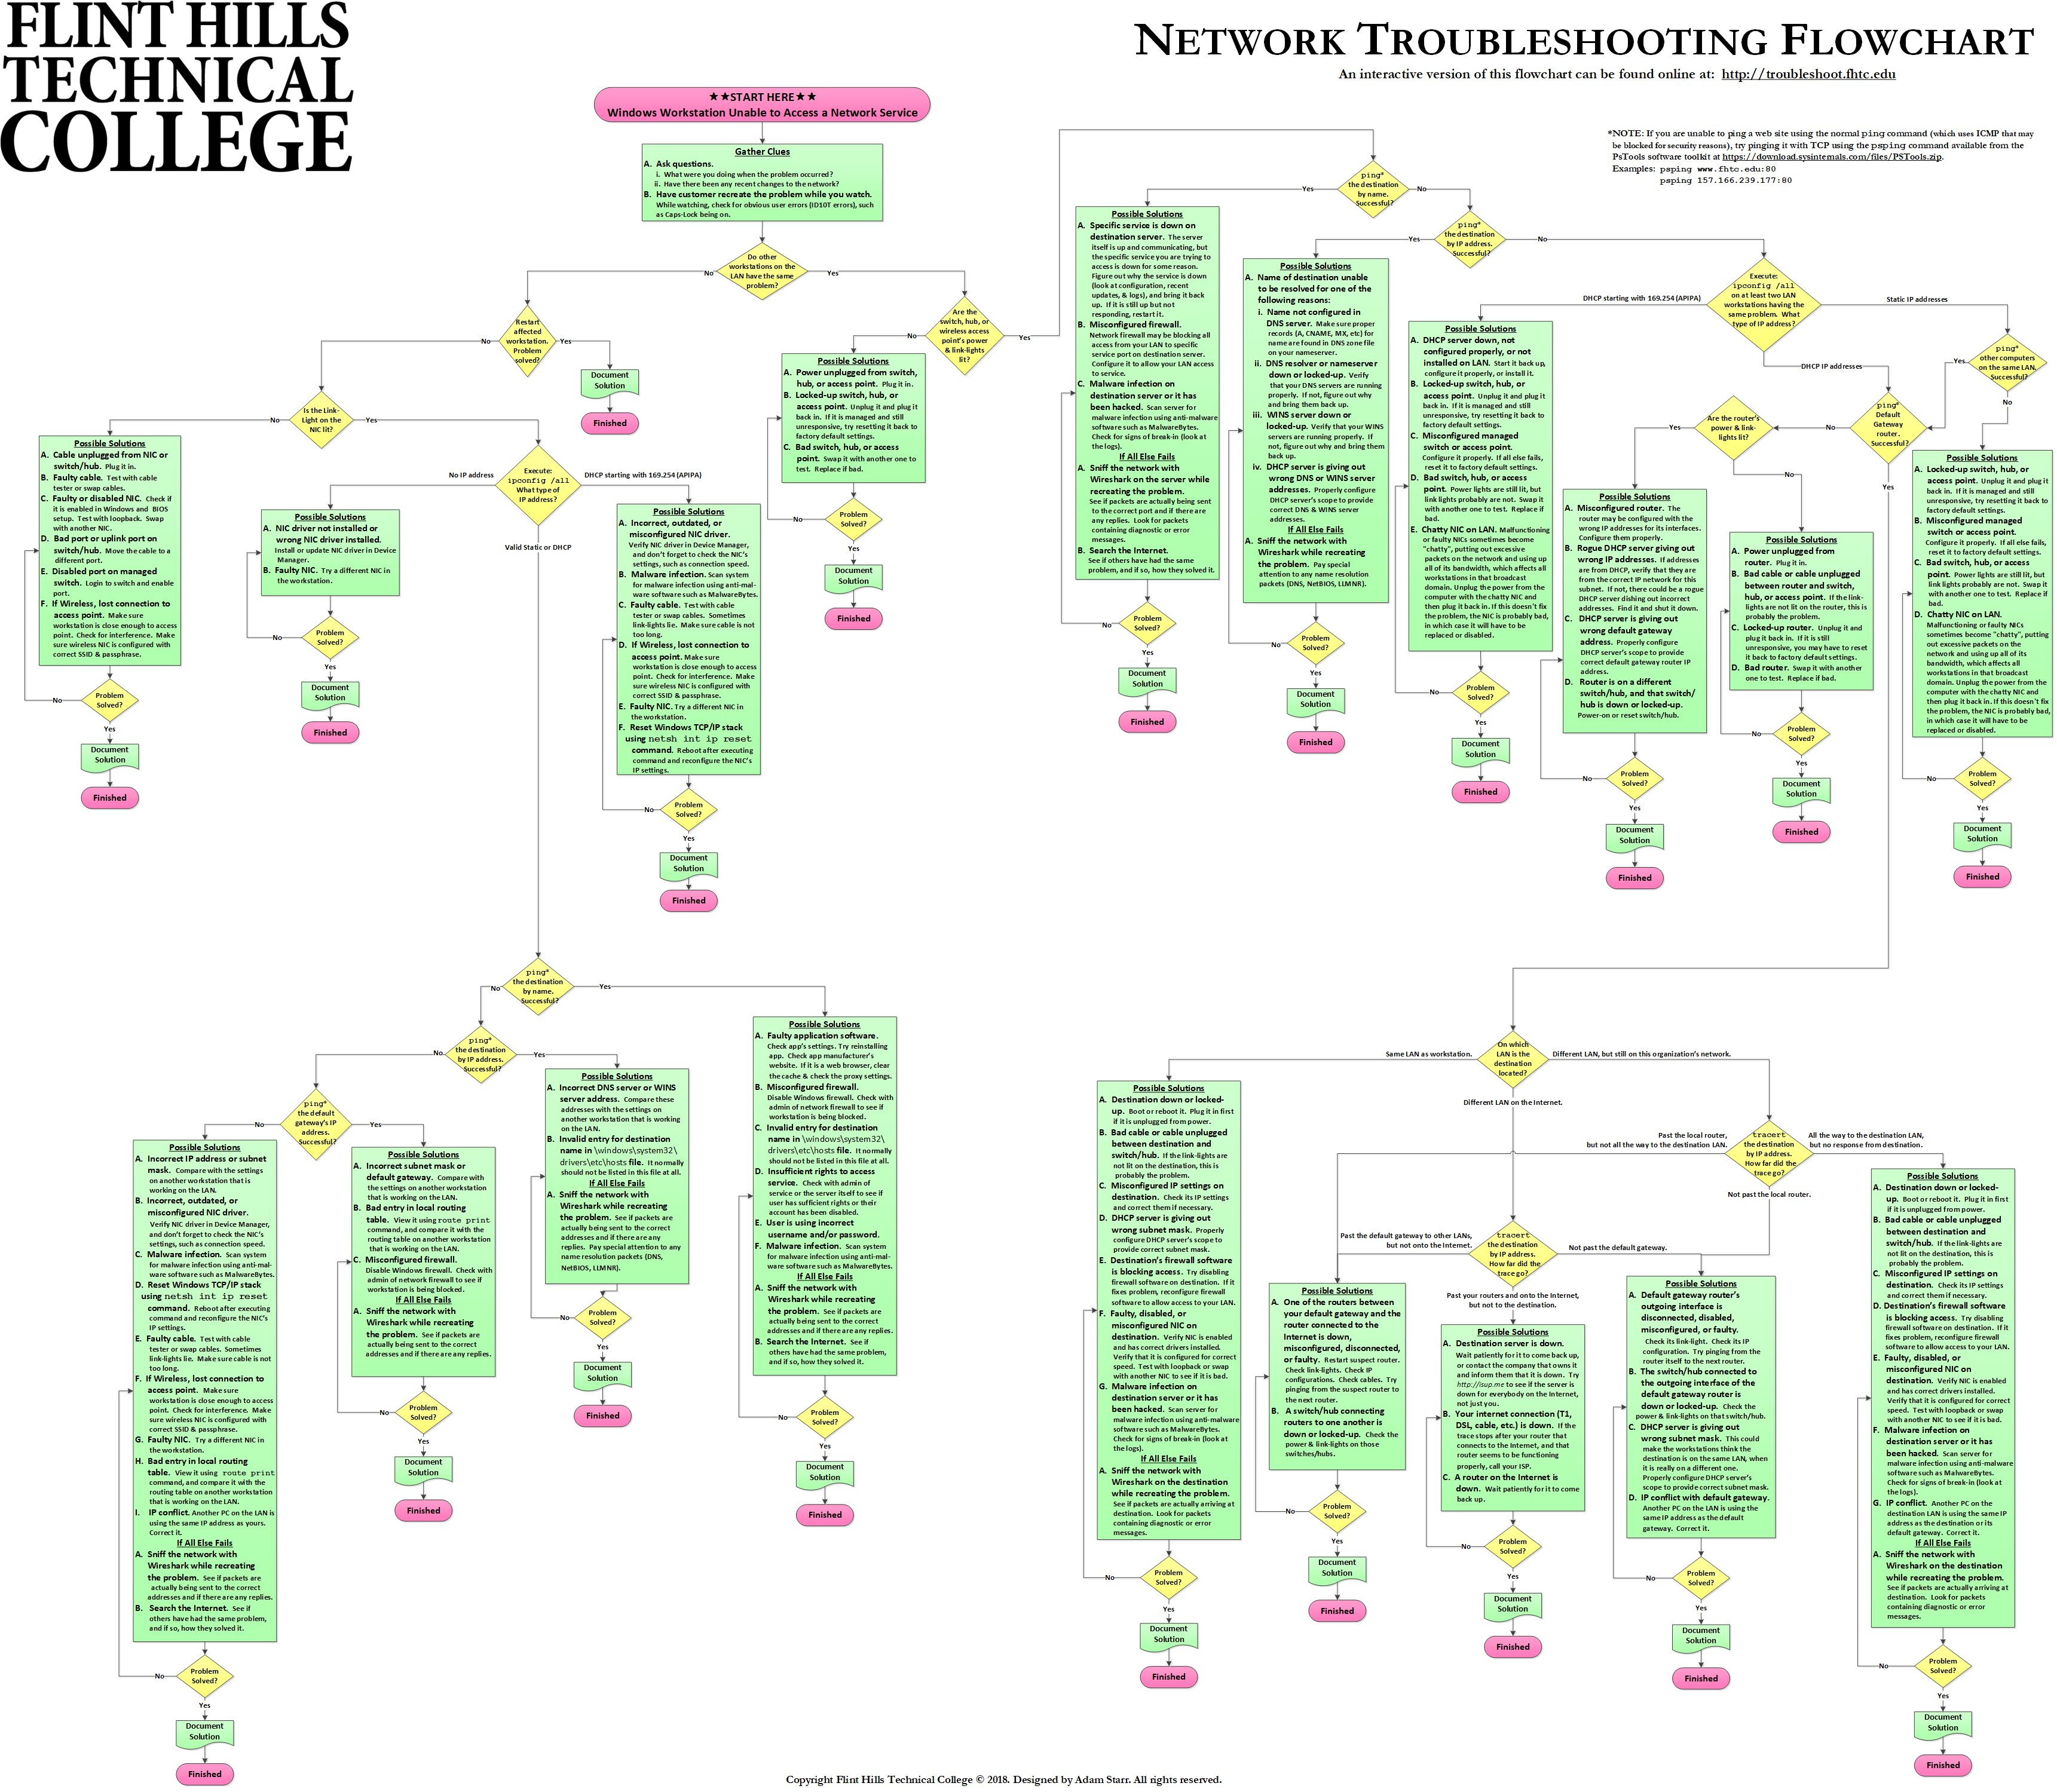 Fhtc network troubleshooting flowchart click here for a graphical version of this flowchart nvjuhfo Image collections